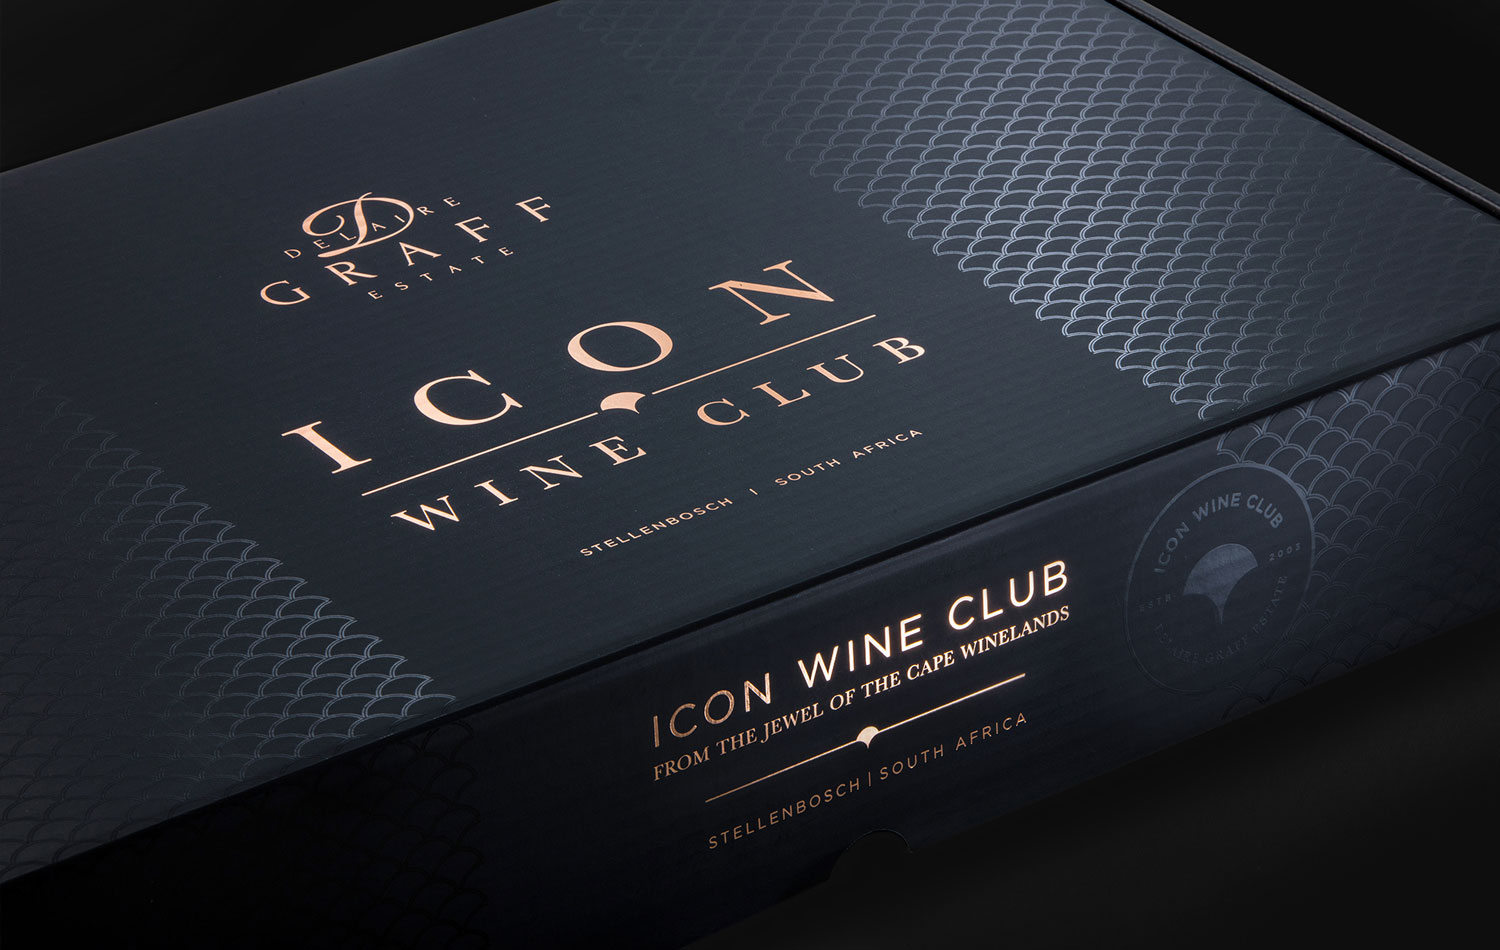 An Icon Wine Club wine gift box